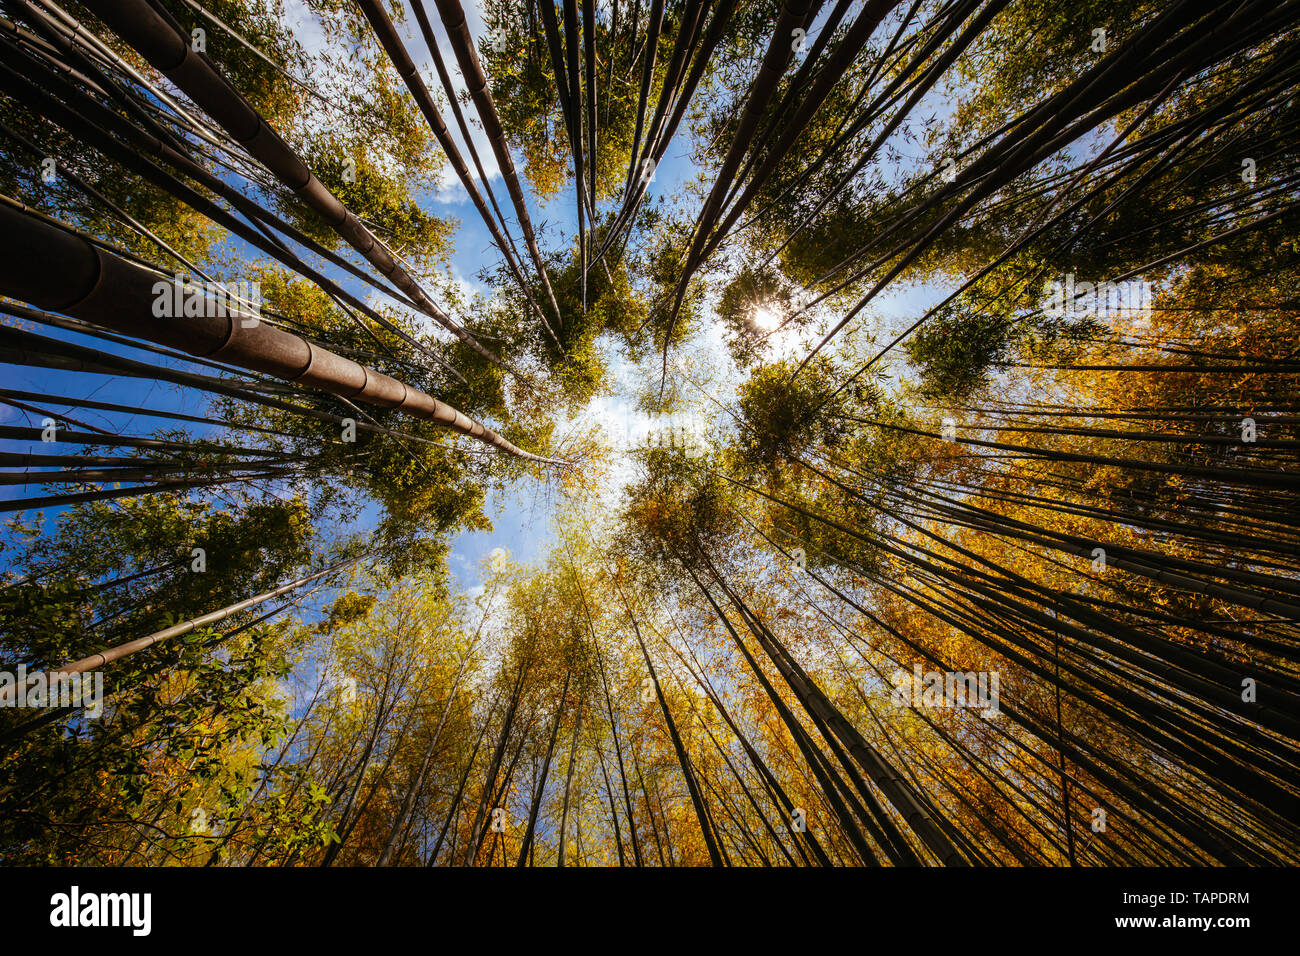 Secret Bamboo Forest of Fushimi Inari Shrine - Stock Image